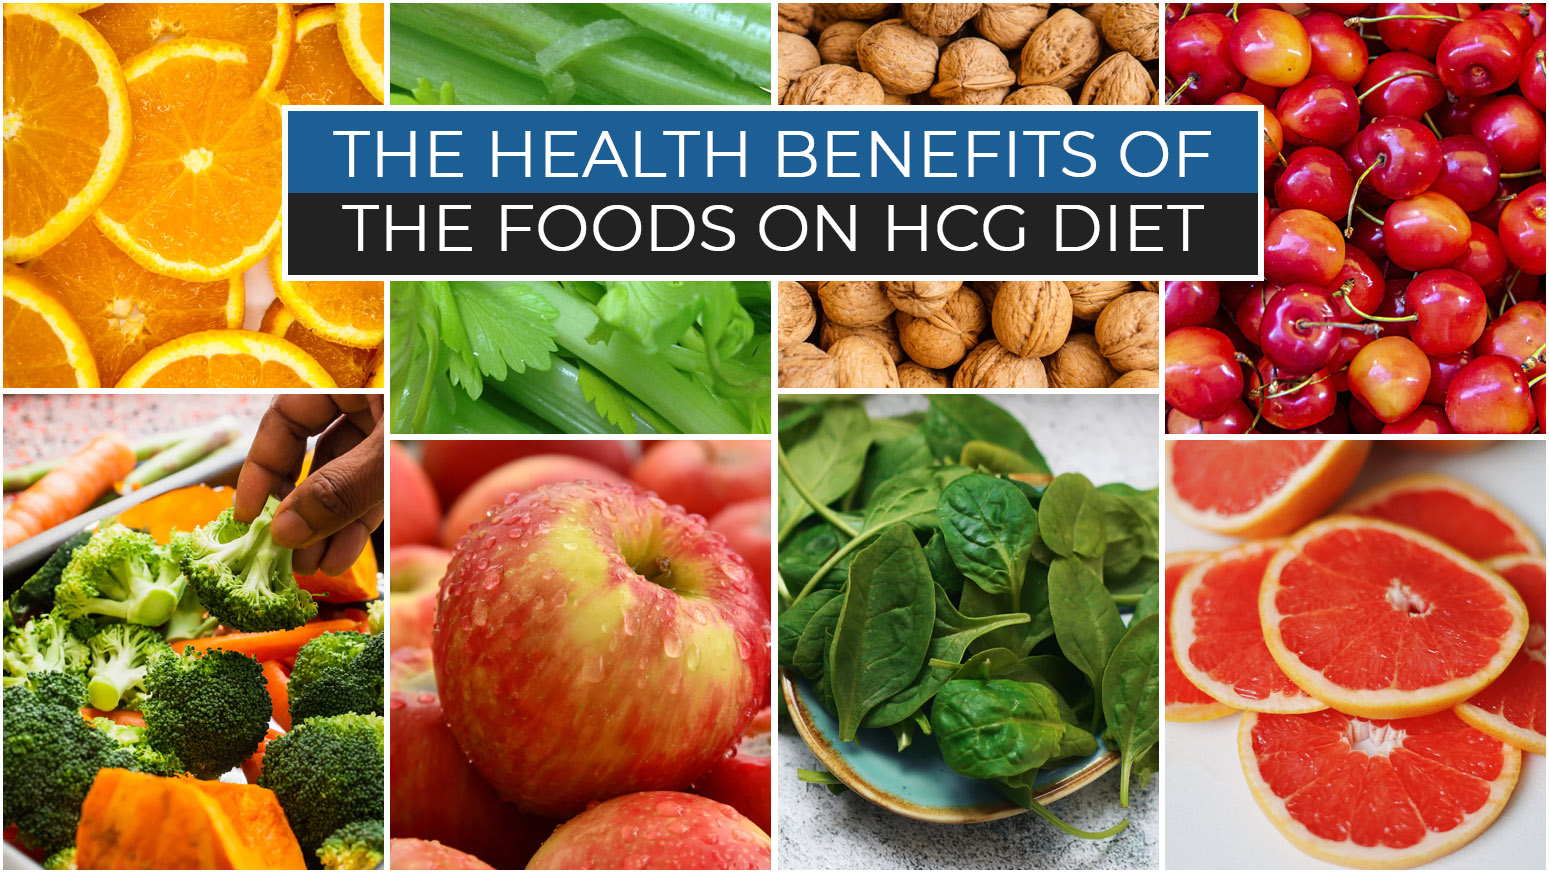 THE HEALTH BENEFITS OF THE FOODS ON HCG DIET